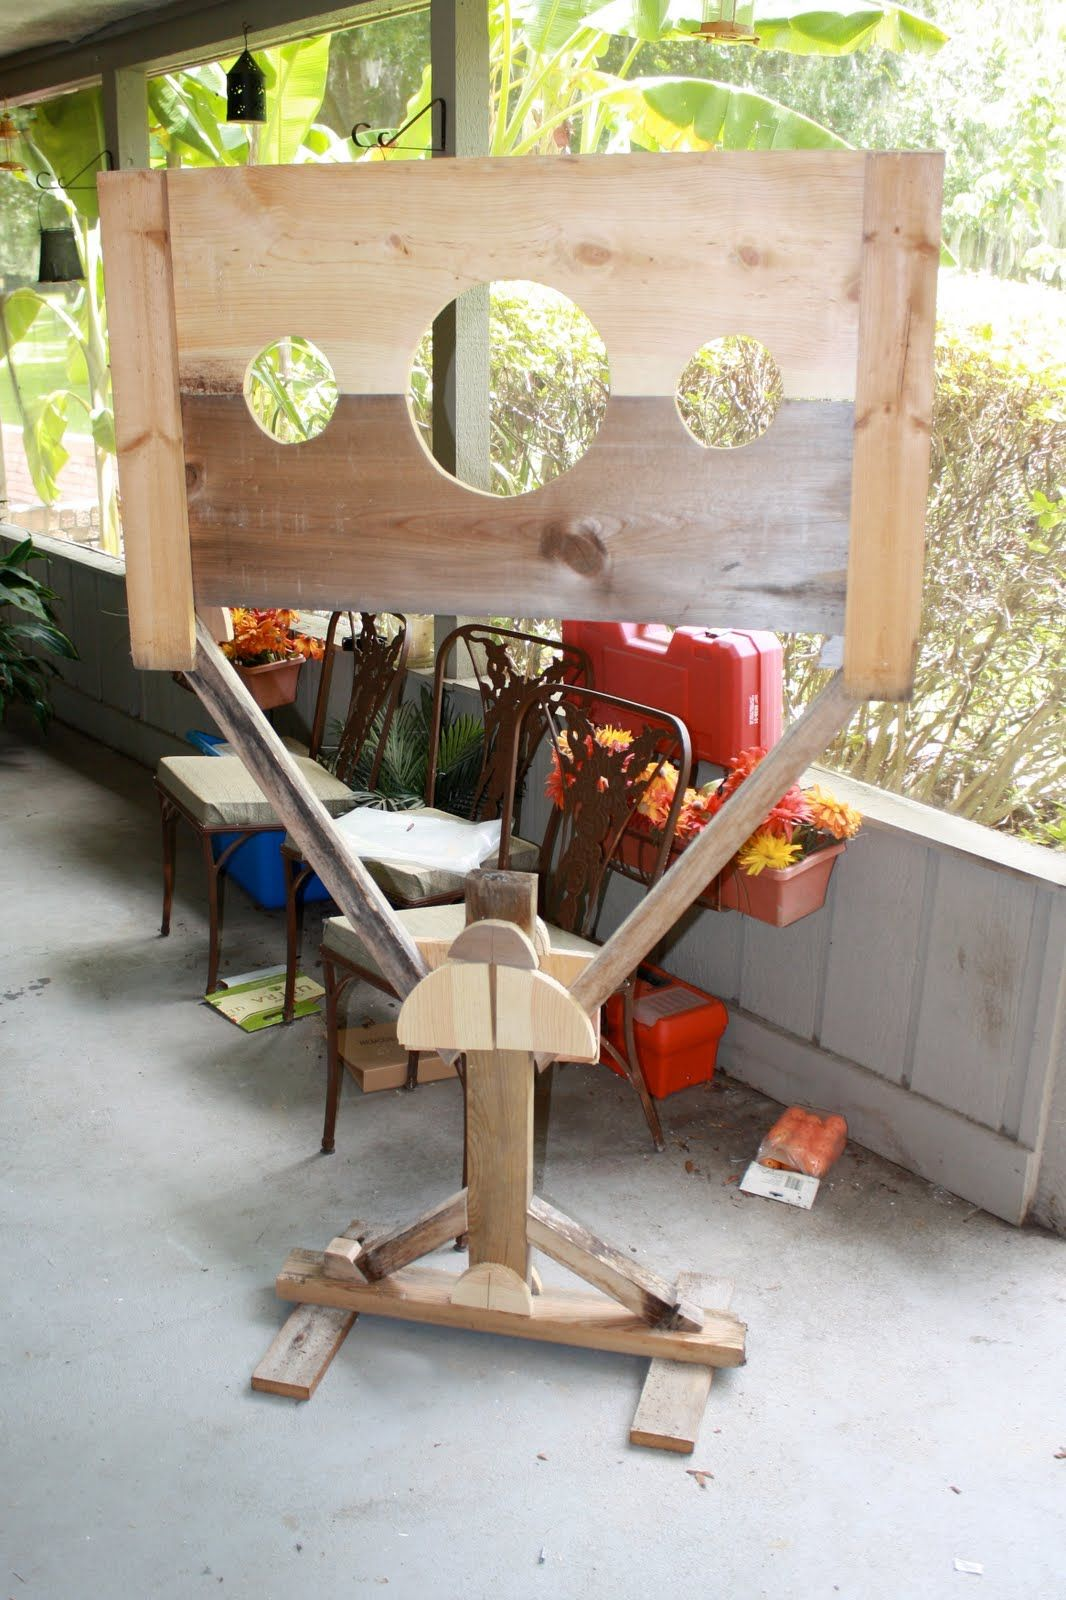 Brainure: How to Make Your Own Pillory (or stockade) | Halloween ...